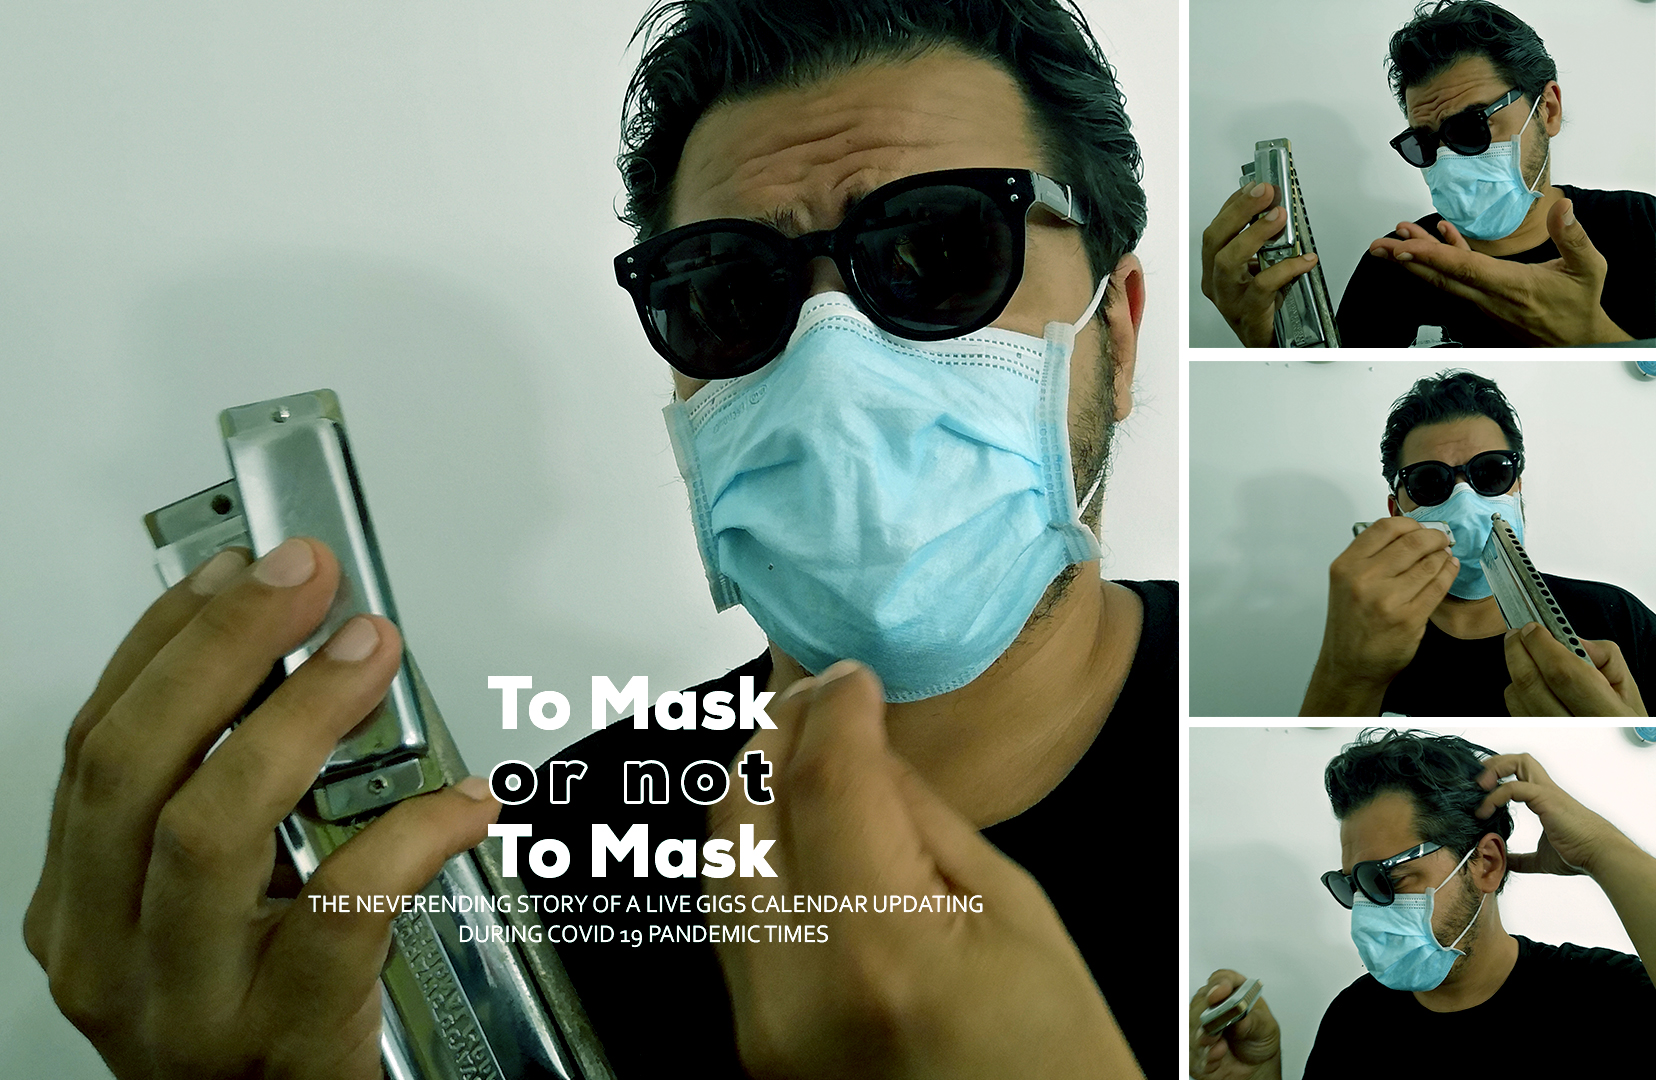 To Mask Or Not To Mask